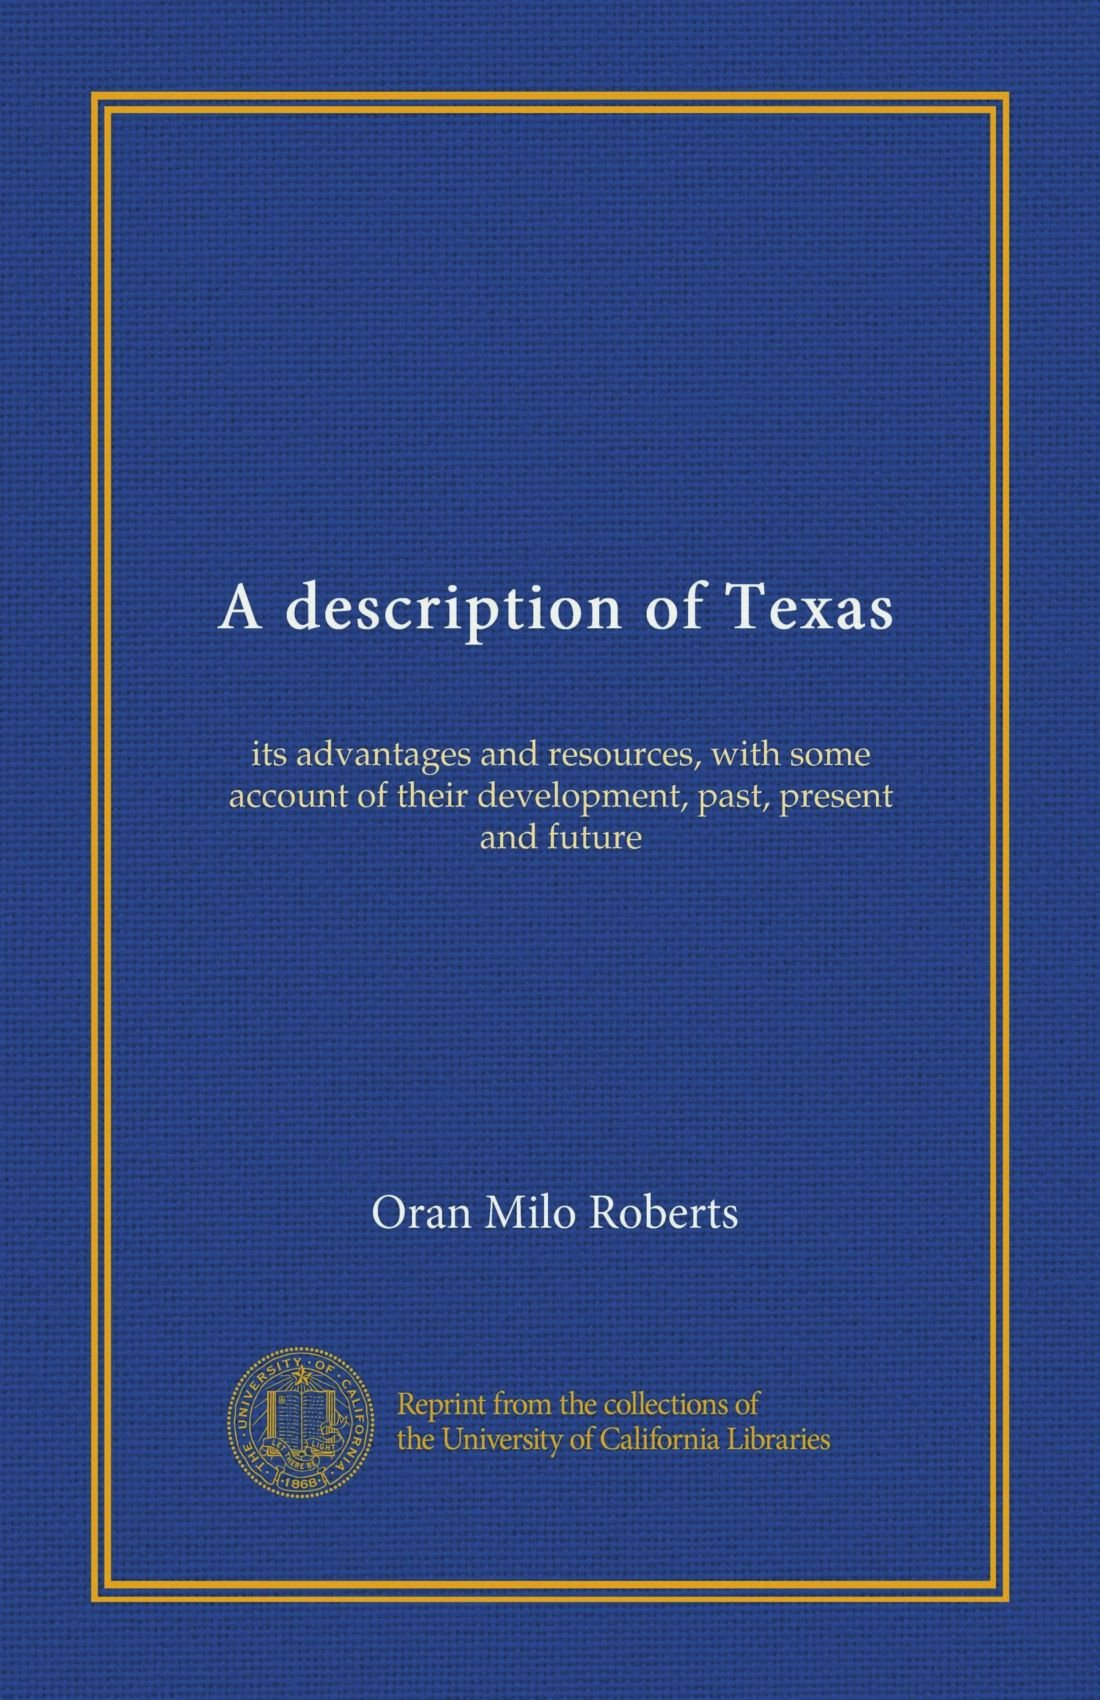 A description of Texas: its advantages and resources, with some account of their development, past, present and future ebook